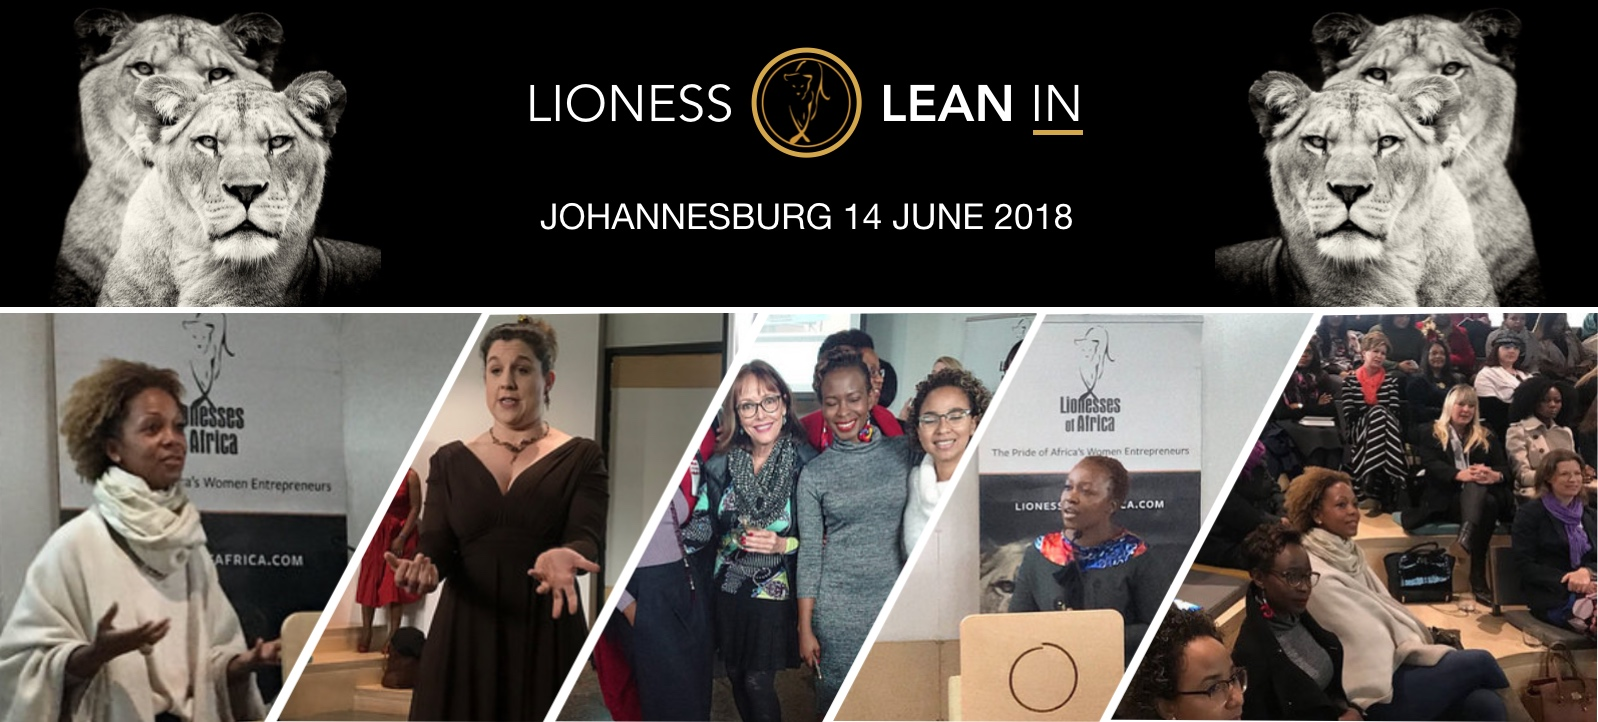 Lioness-Lean-In-Jhb-June-2018.jpg